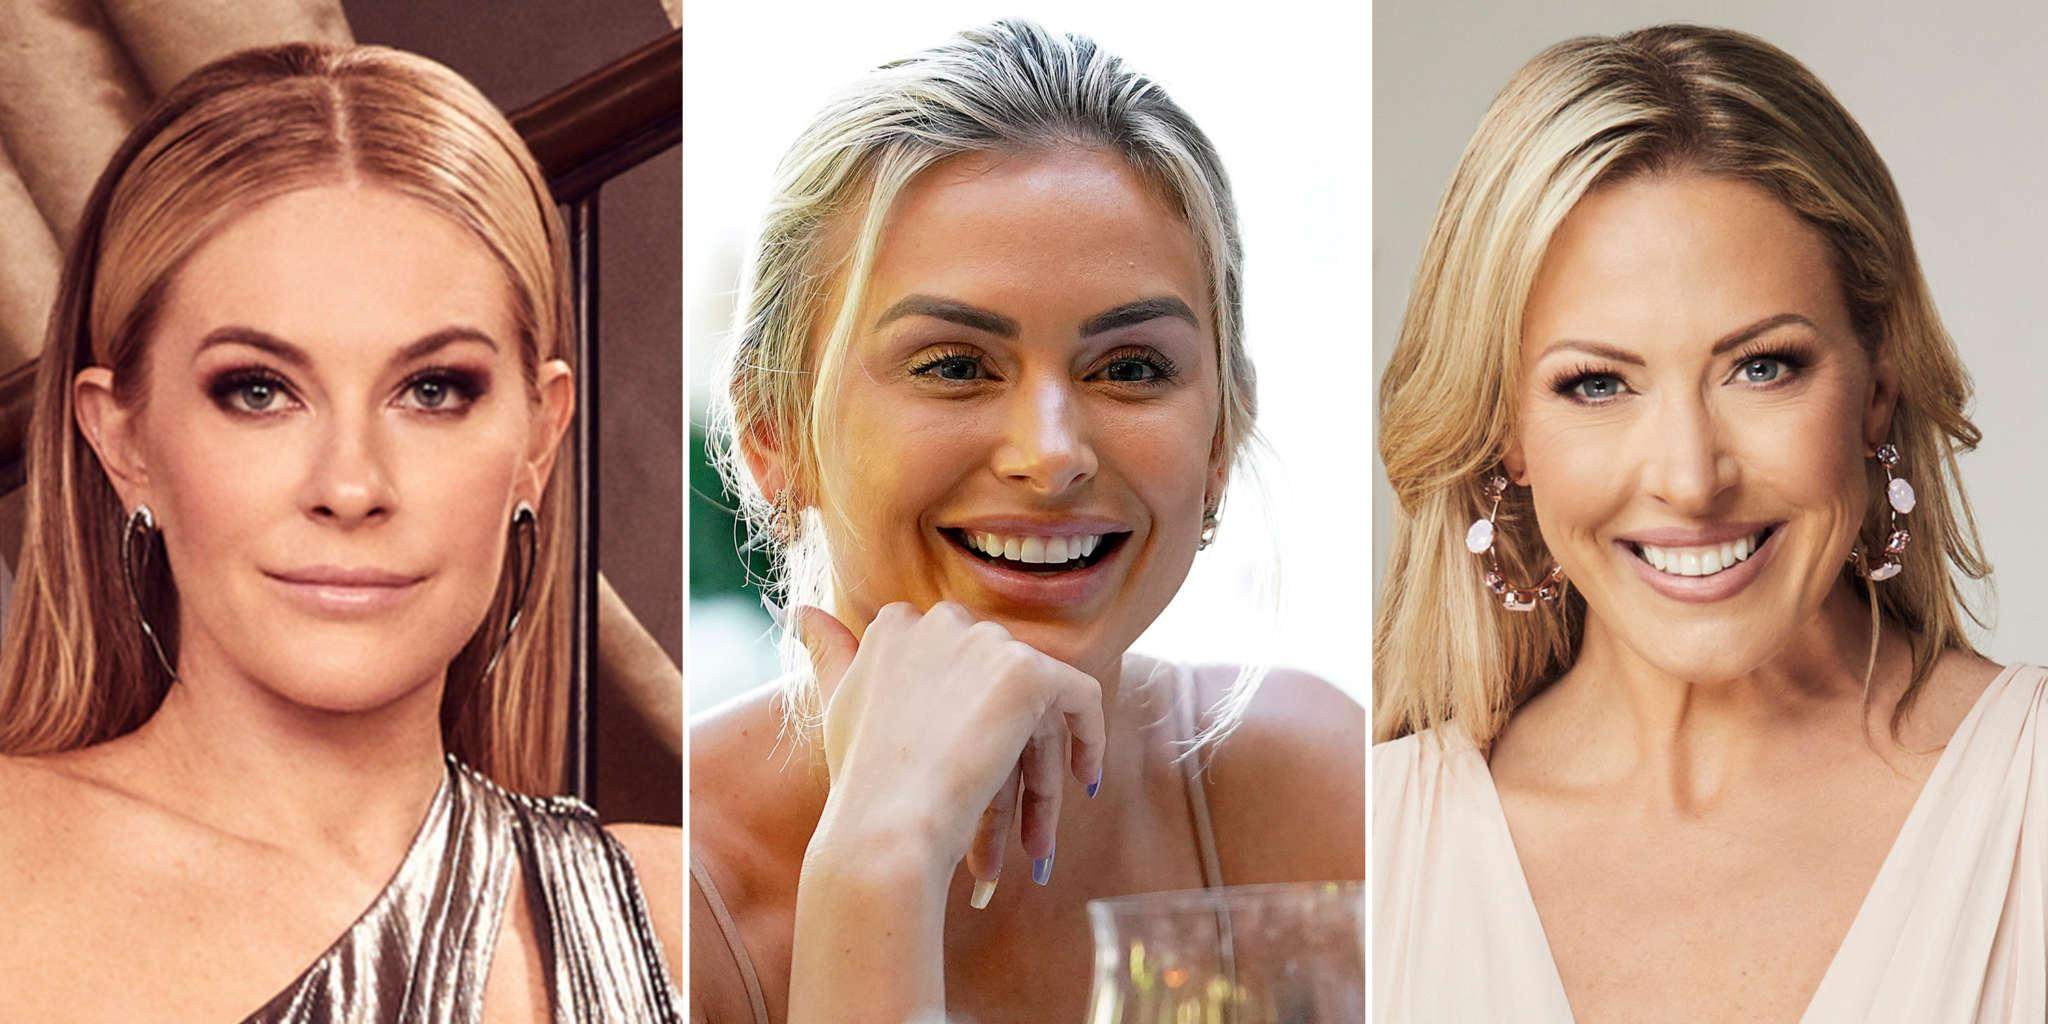 Bravo Stars Leah McSweeney, Braunwyn Windham-Burke, And Lala Kent All Talk Sobriety In New Interview